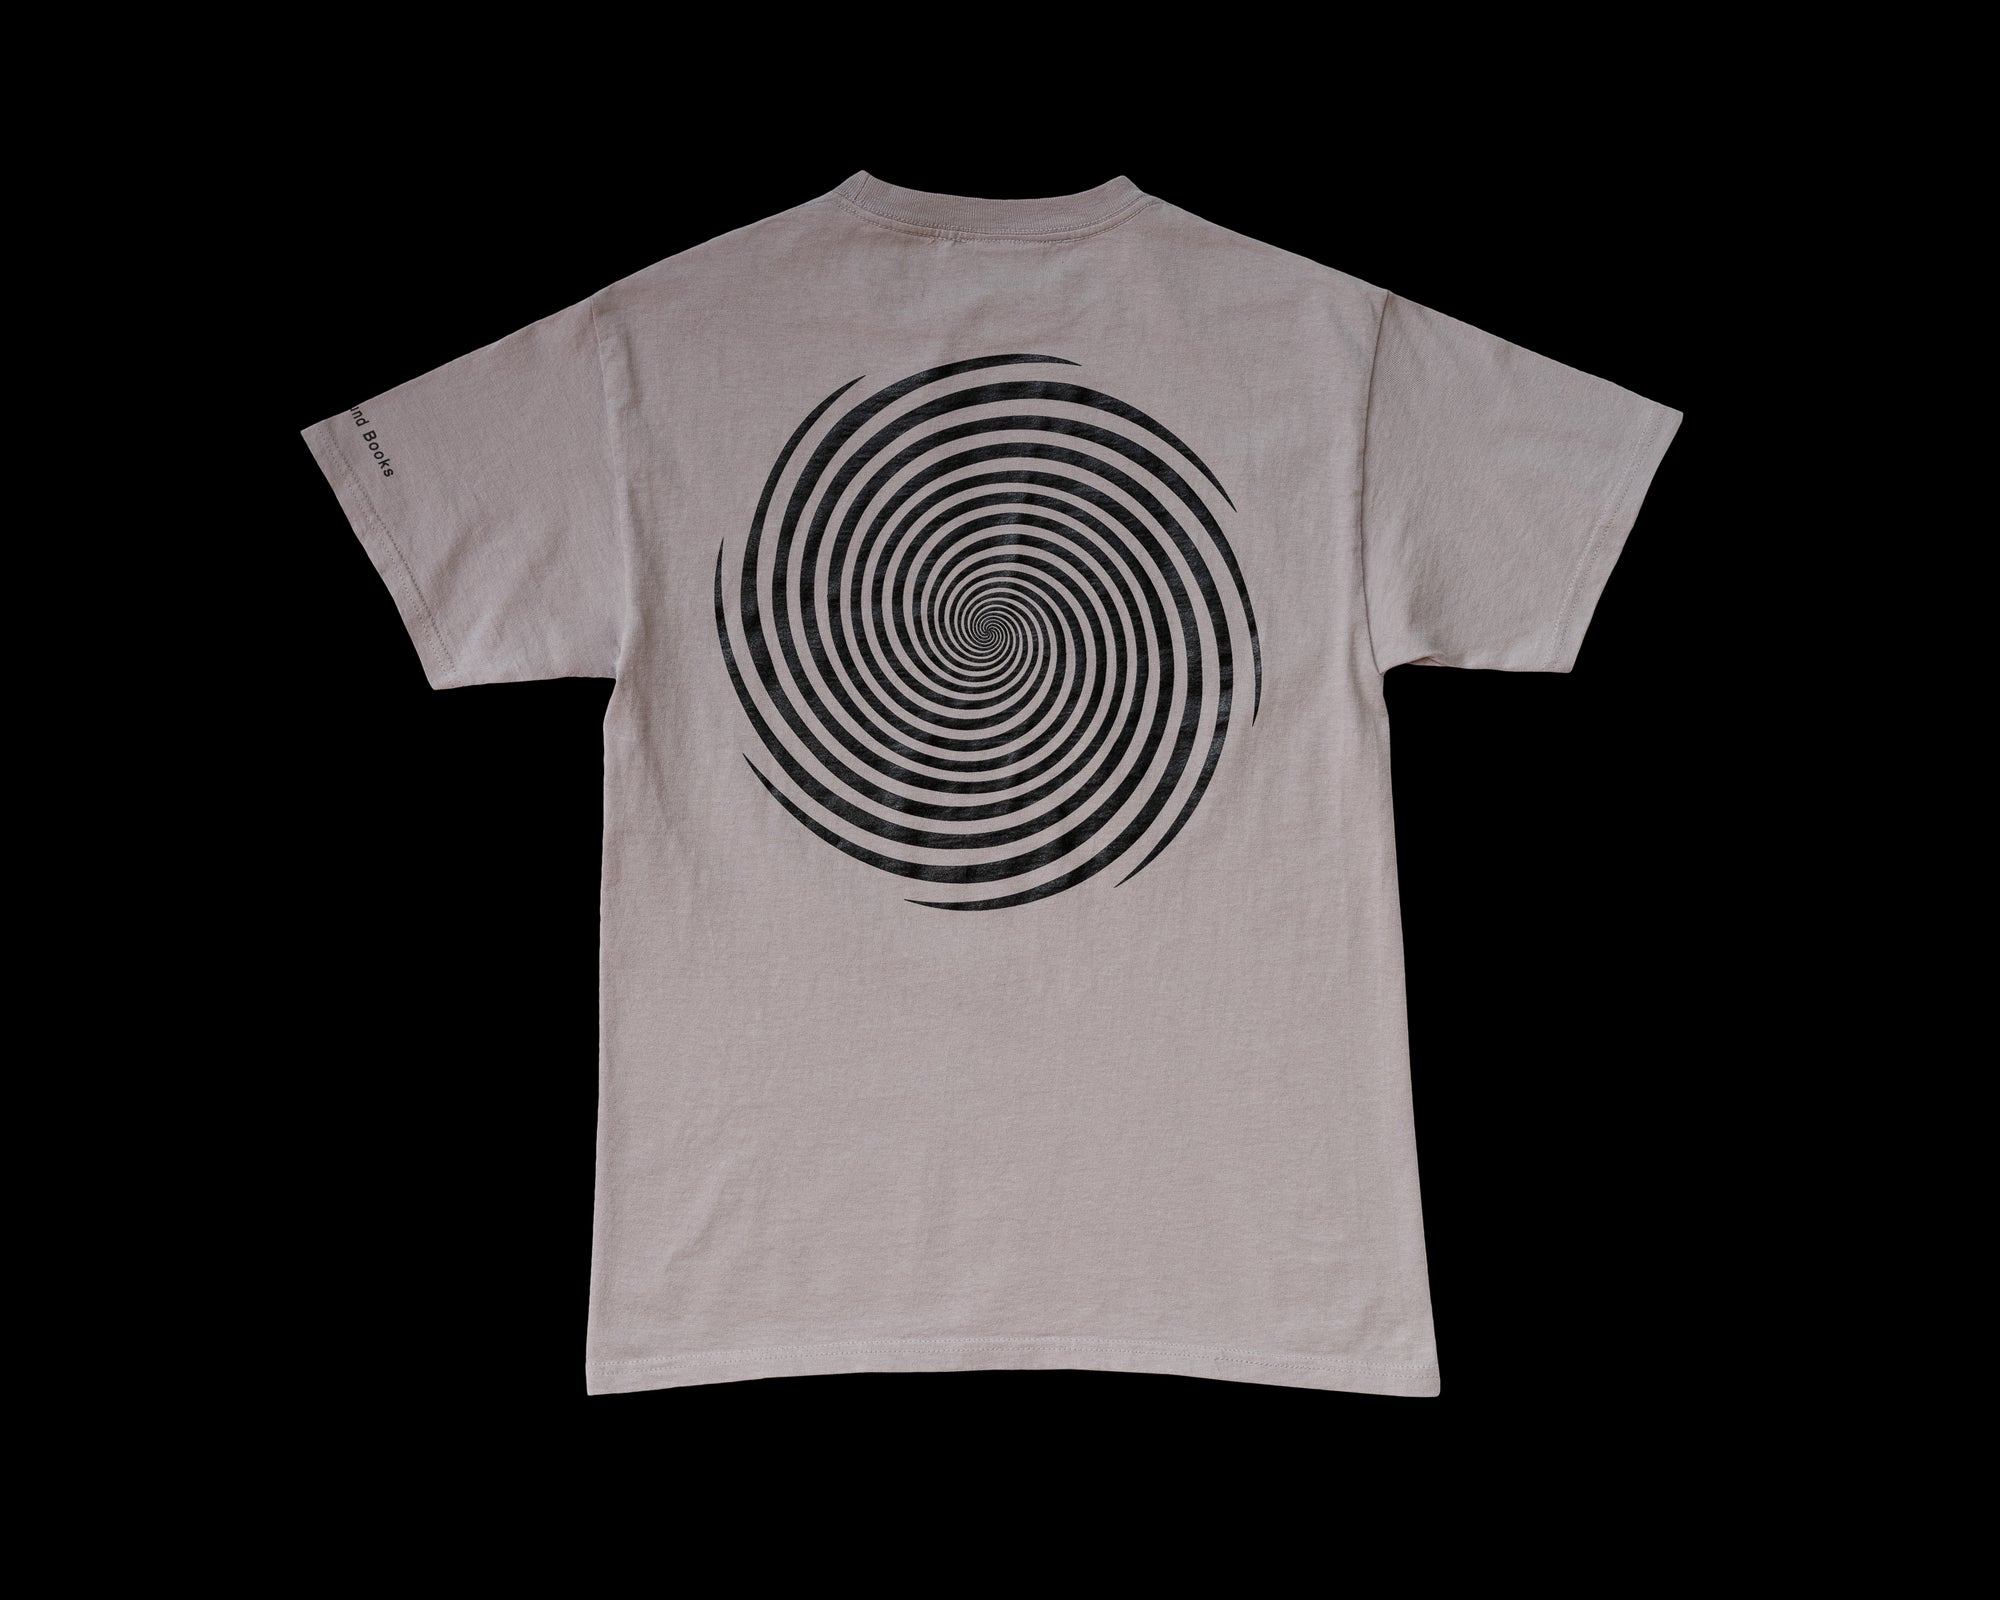 Image of S/S Vortex Tee - Grey / Black